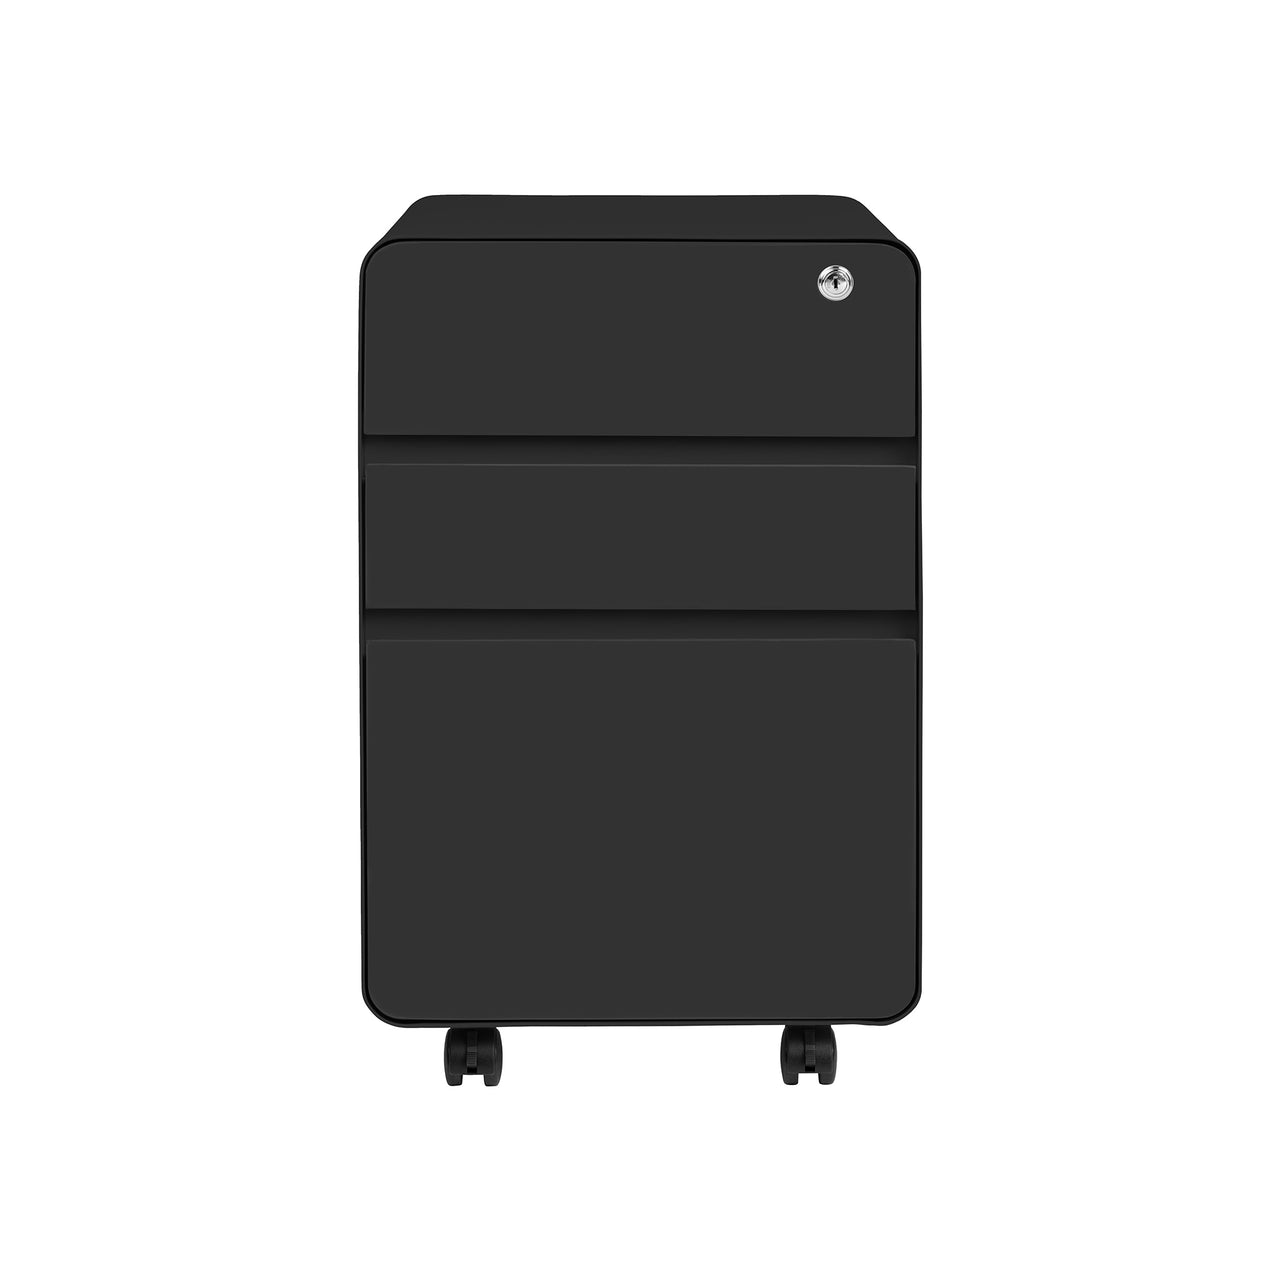 Stockpile Flat 3-Drawer File Cabinet (Black)